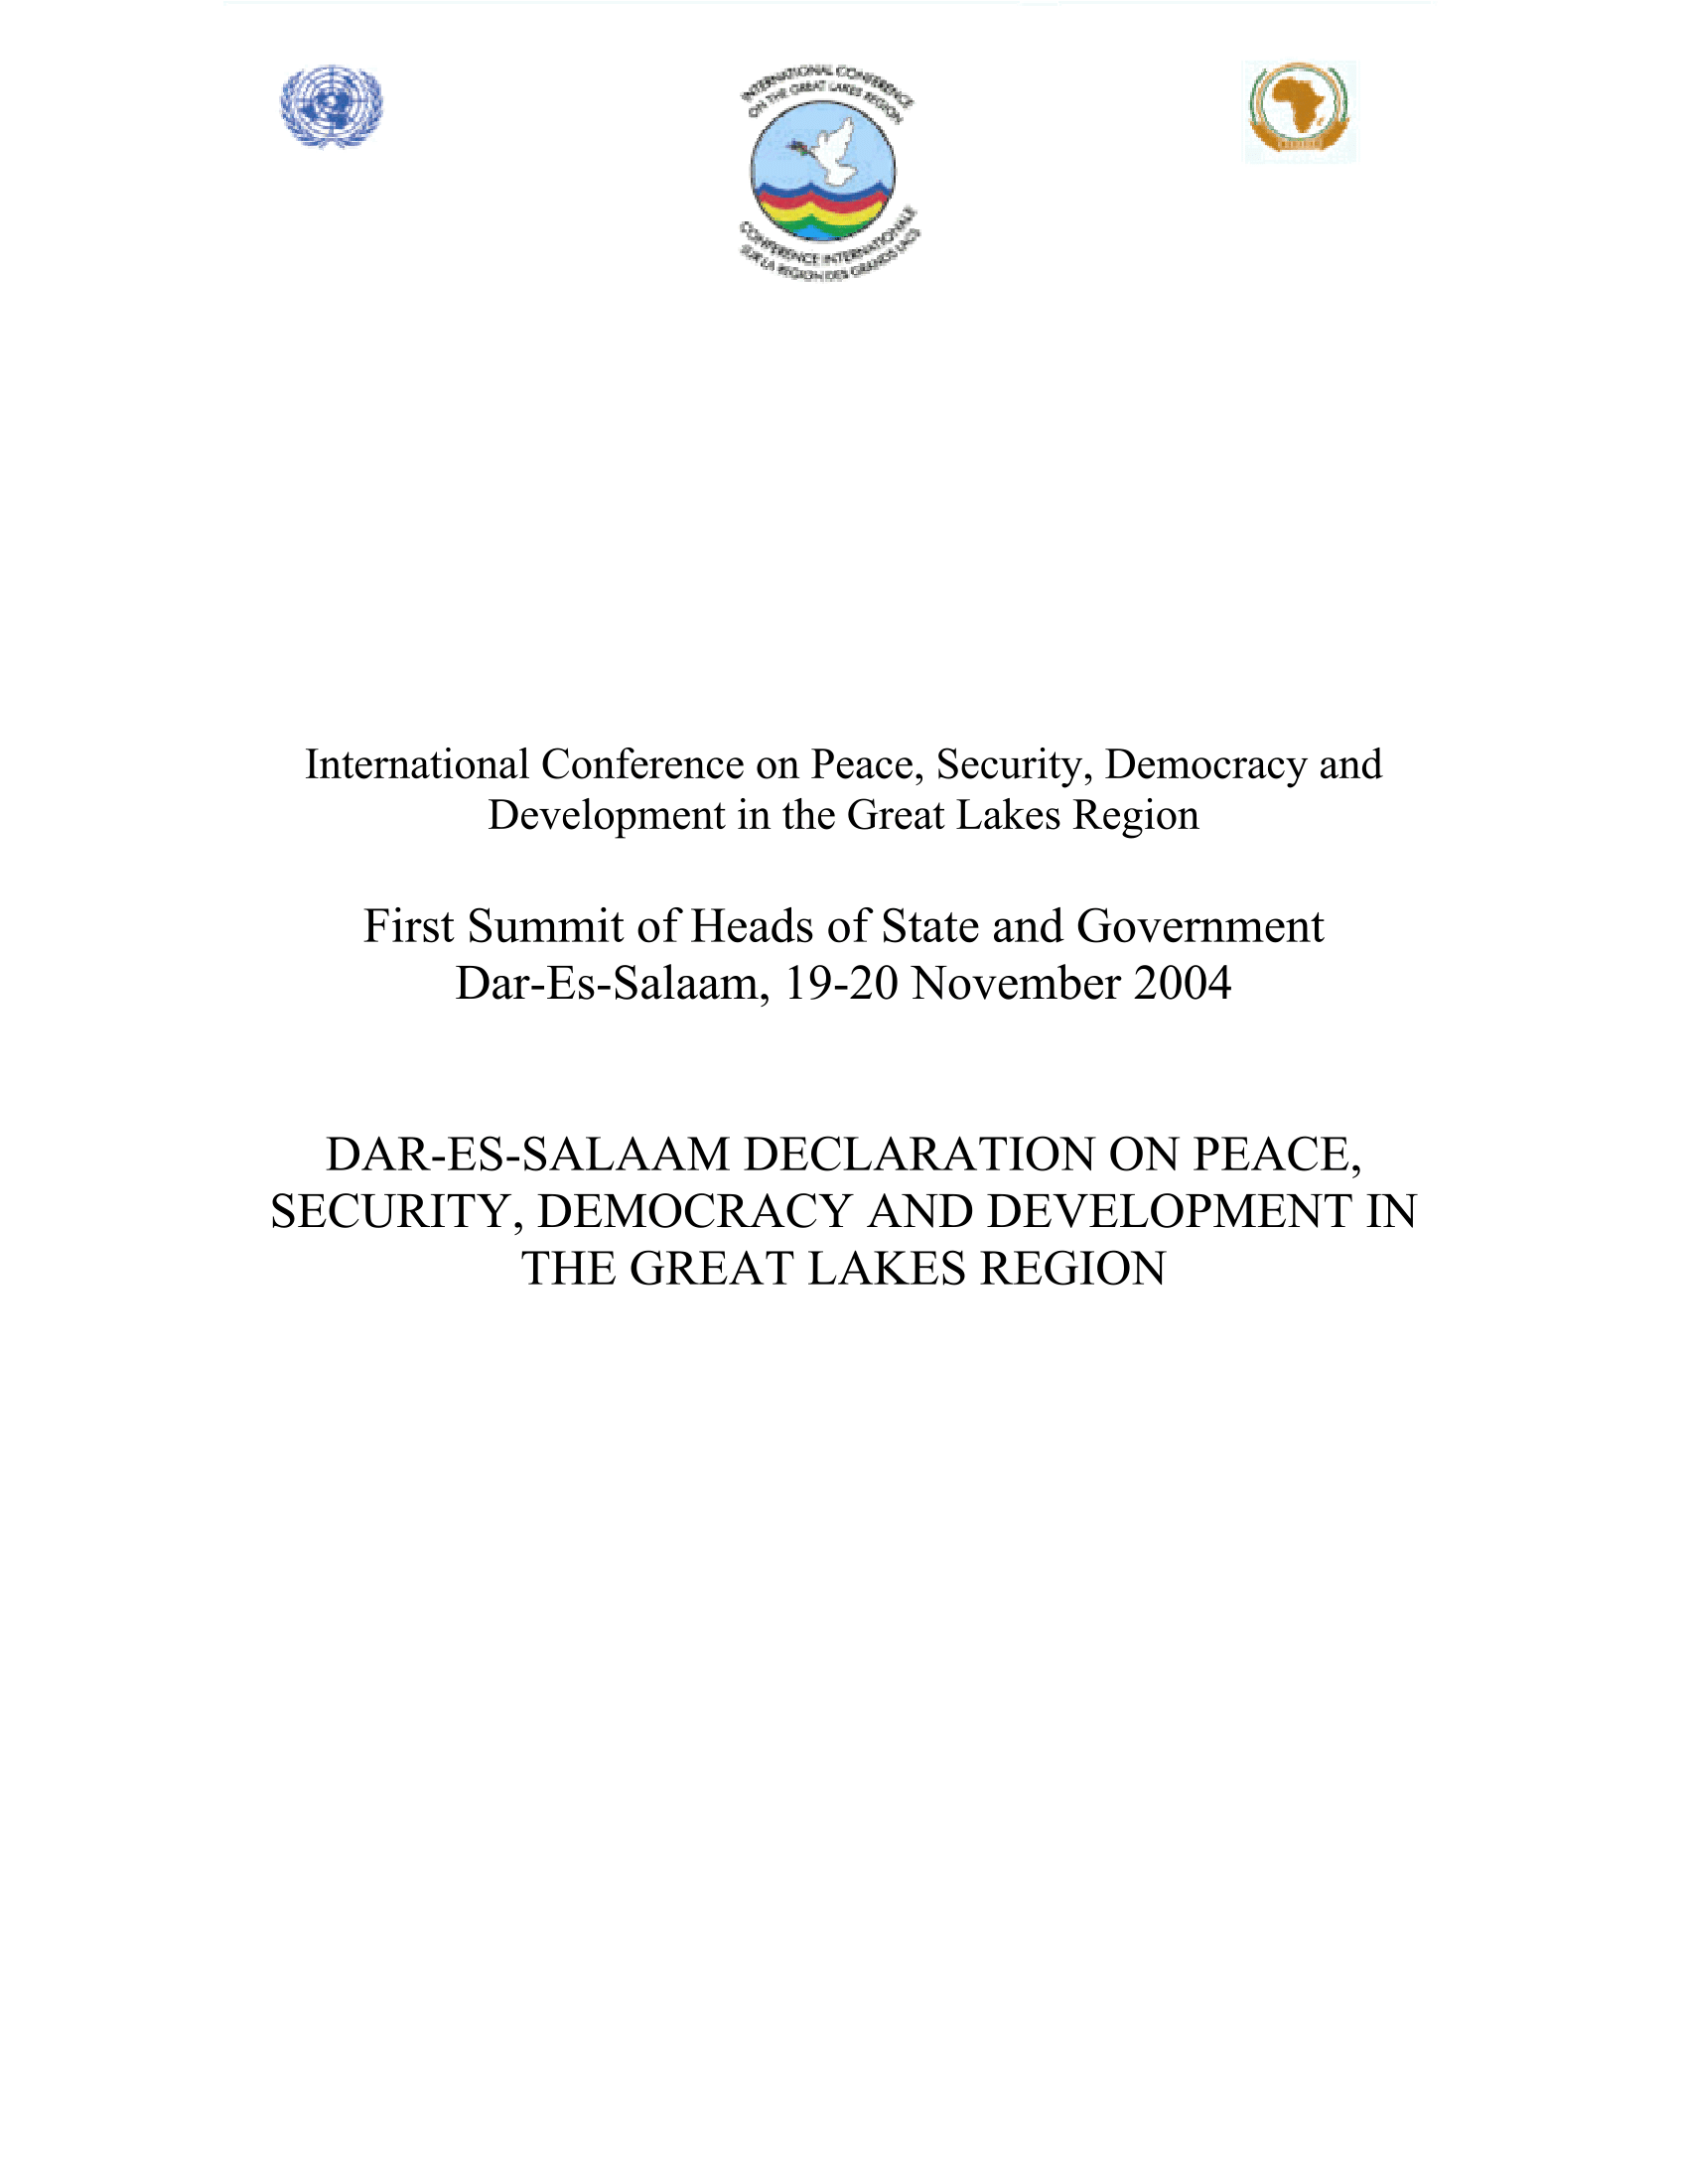 Cover of ICGLR (2004), Dar-Es-Salaam Declaration On Peace, Security, Democracy And Development In The Great Lakes Region.